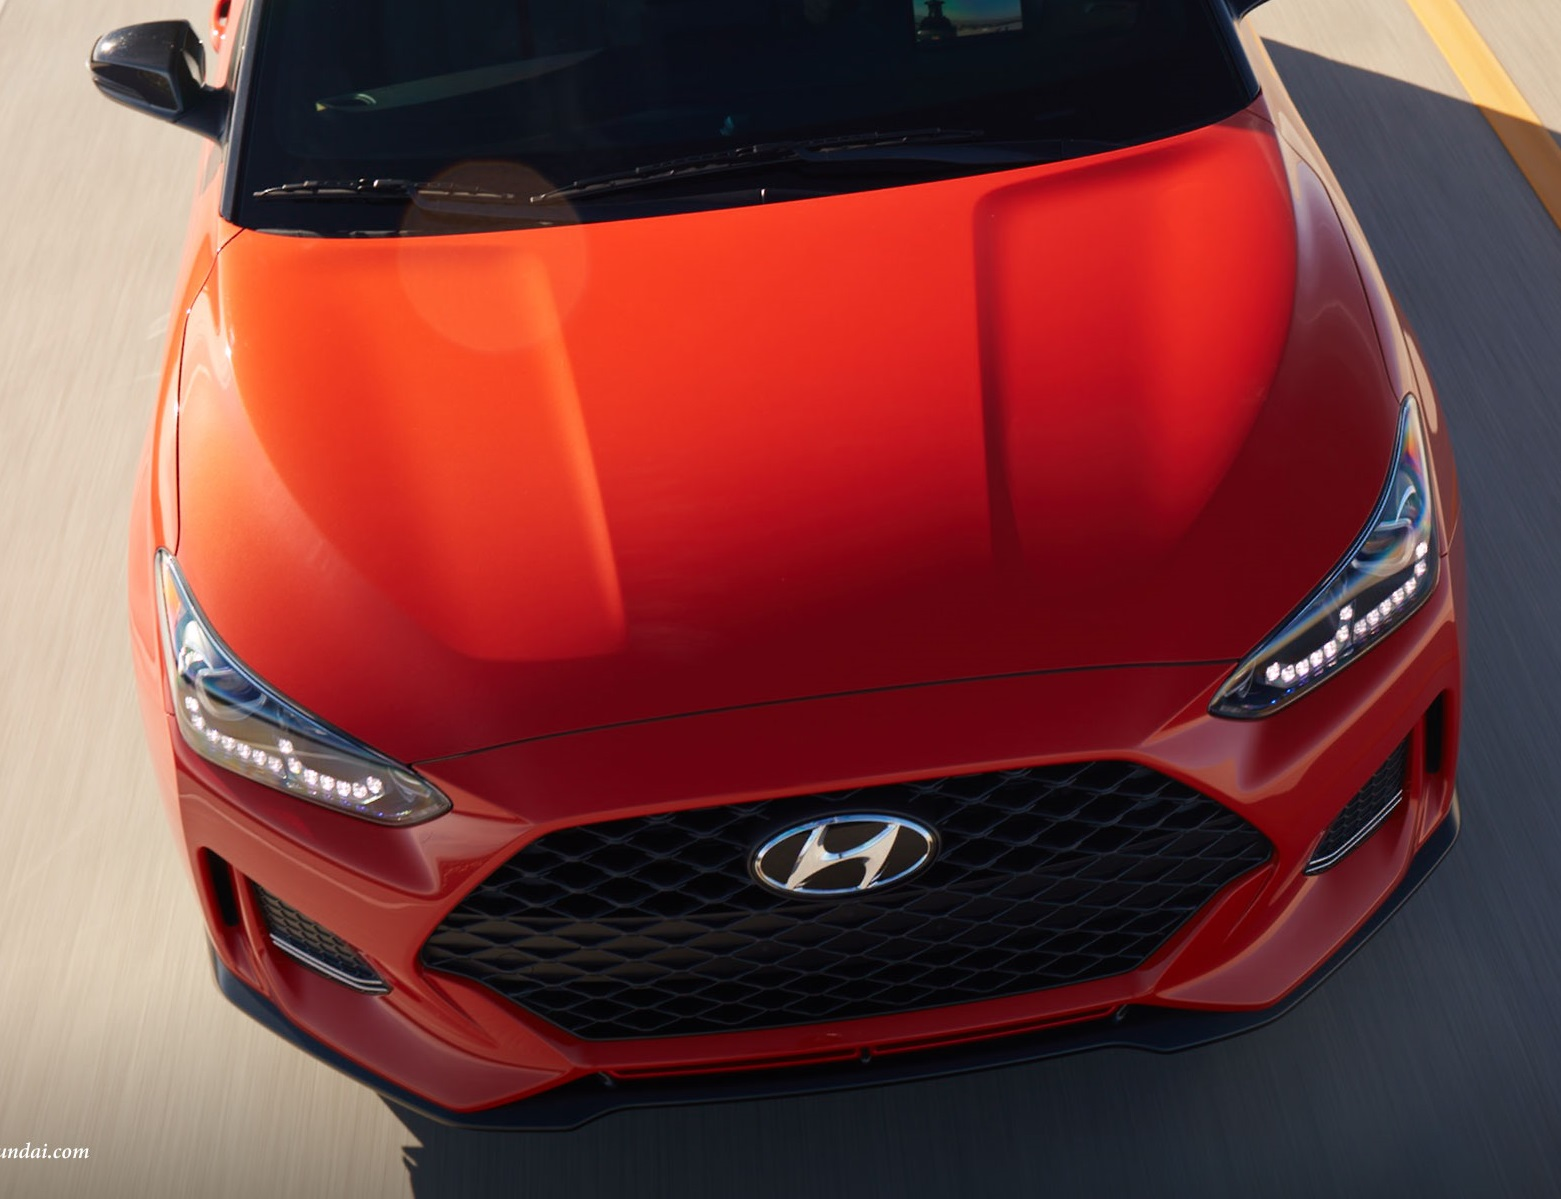 Michigan REVIEW - 2019 Hyundai Veloster's Exterior